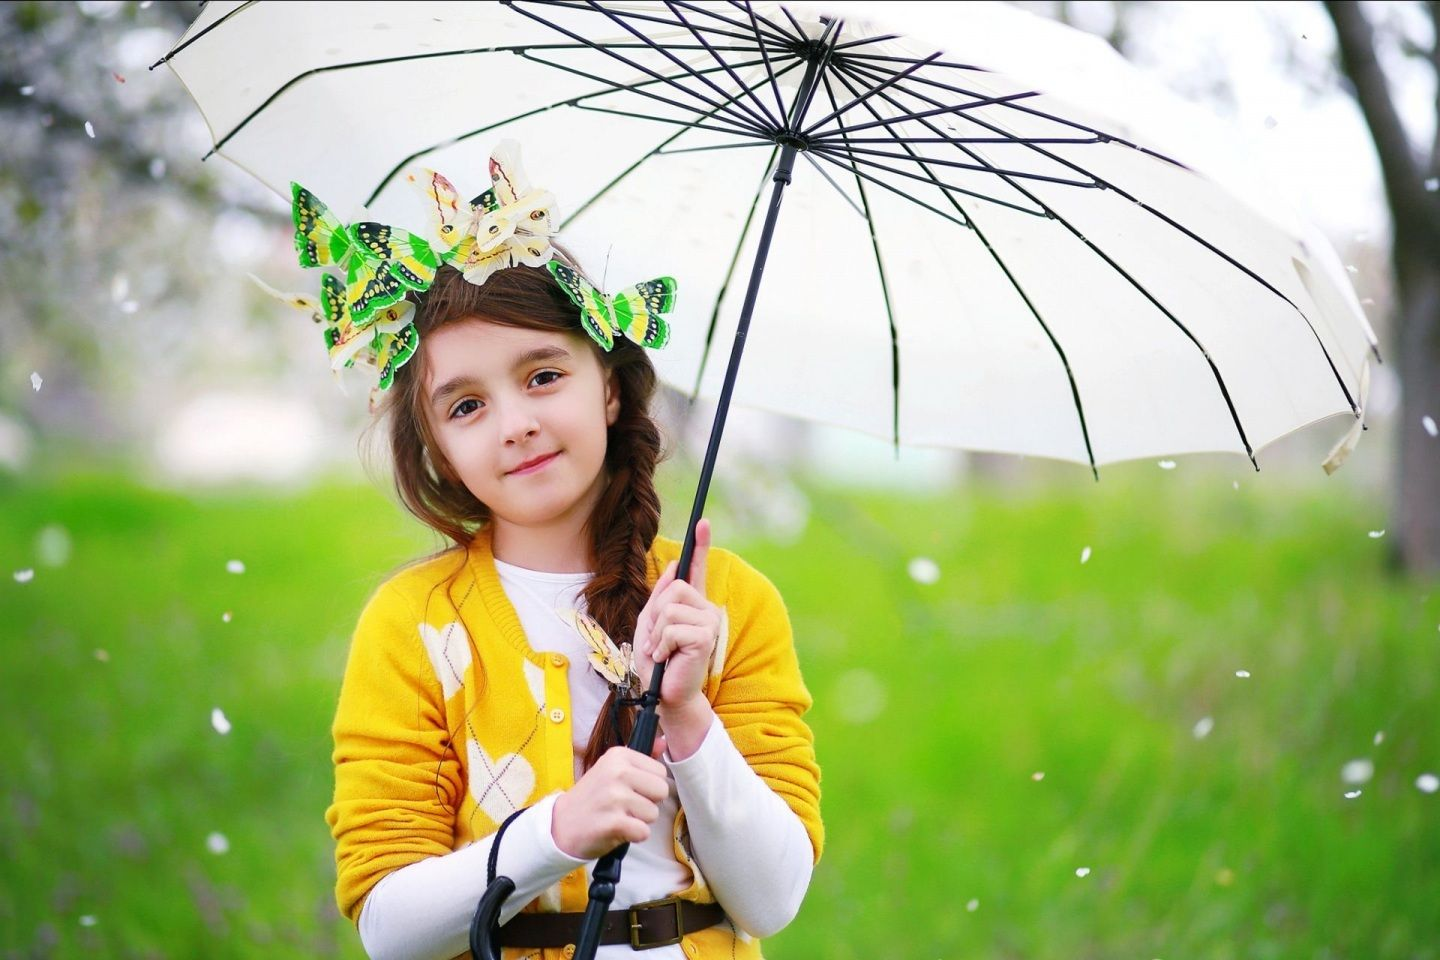 Facebook Profile Pictures Jpg 1440 960 Cute Baby Girl Pictures Cute Baby Girl Wallpaper Baby Girl Wallpaper